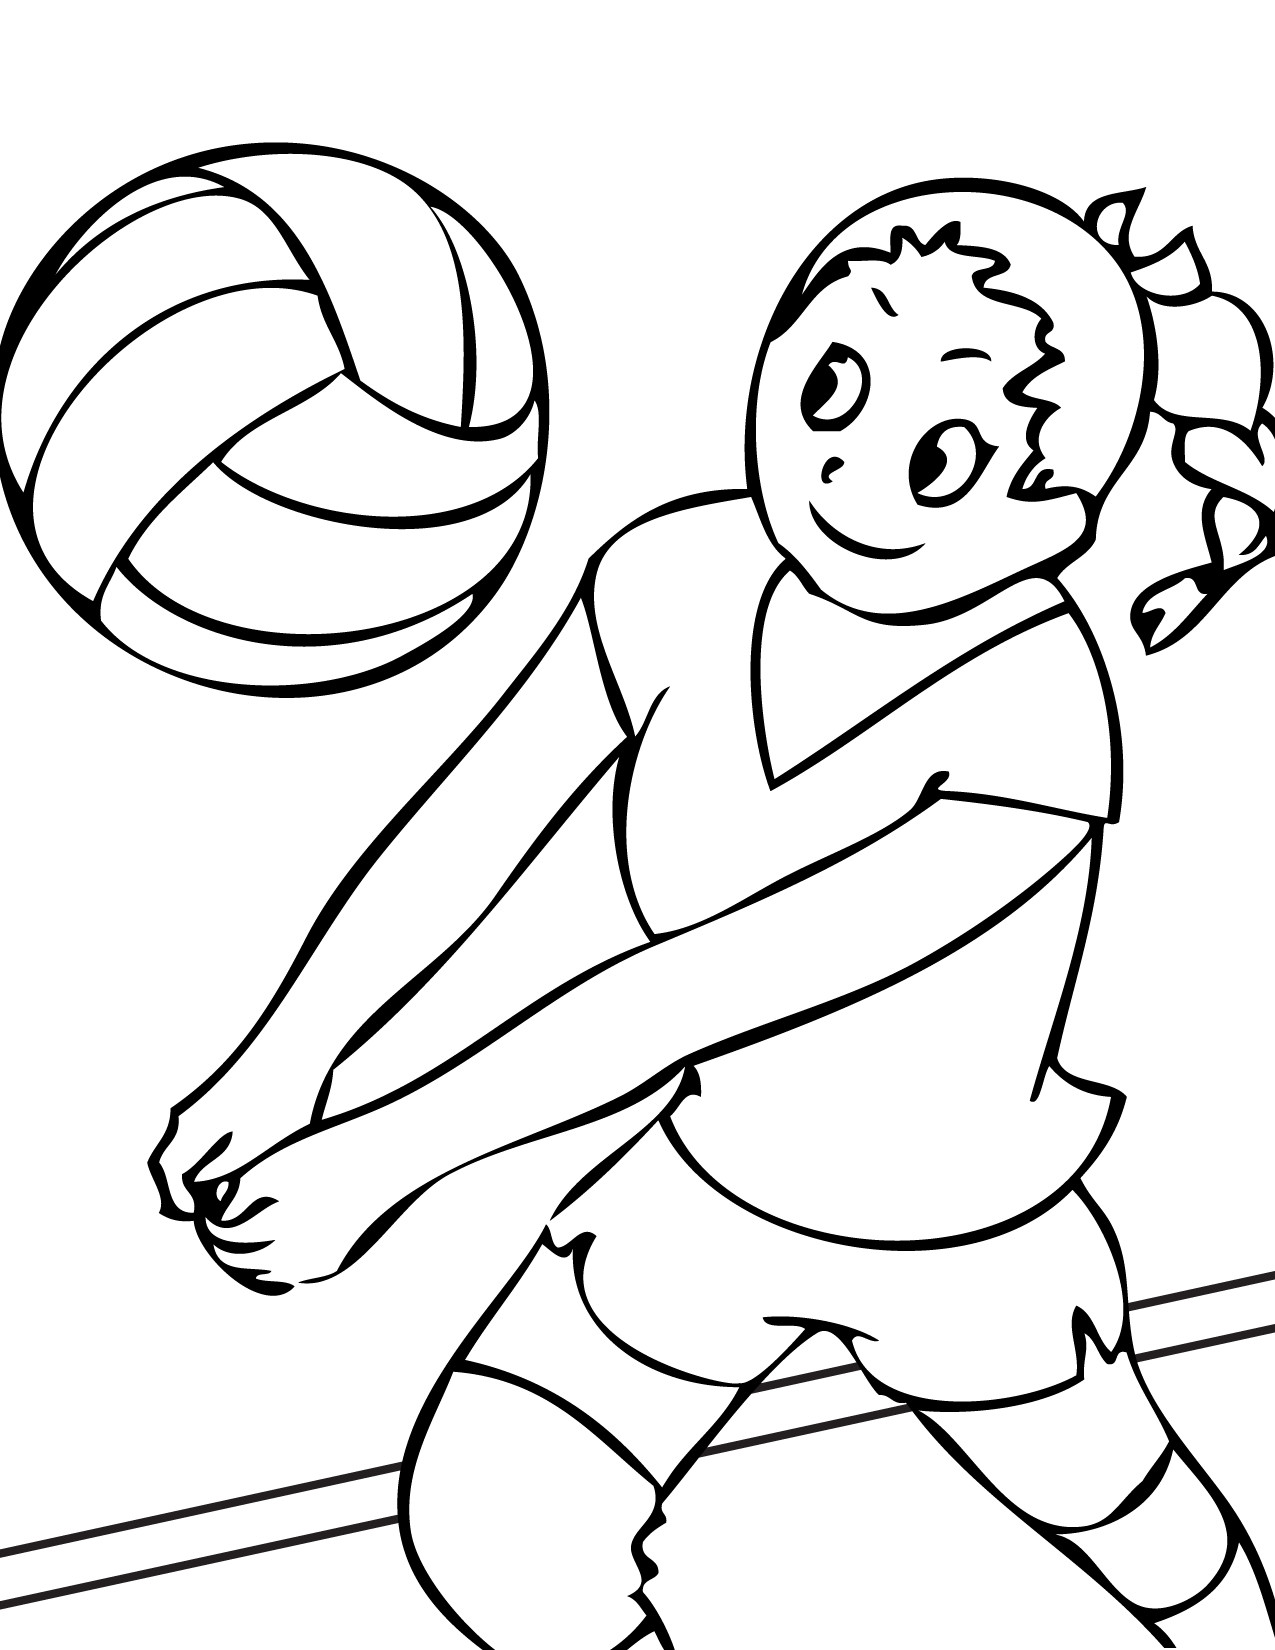 Best ideas about Sports Coloring Pages For Girls . Save or Pin Seasonal Colouring Pages Winter Sports Coloring Pages Now.